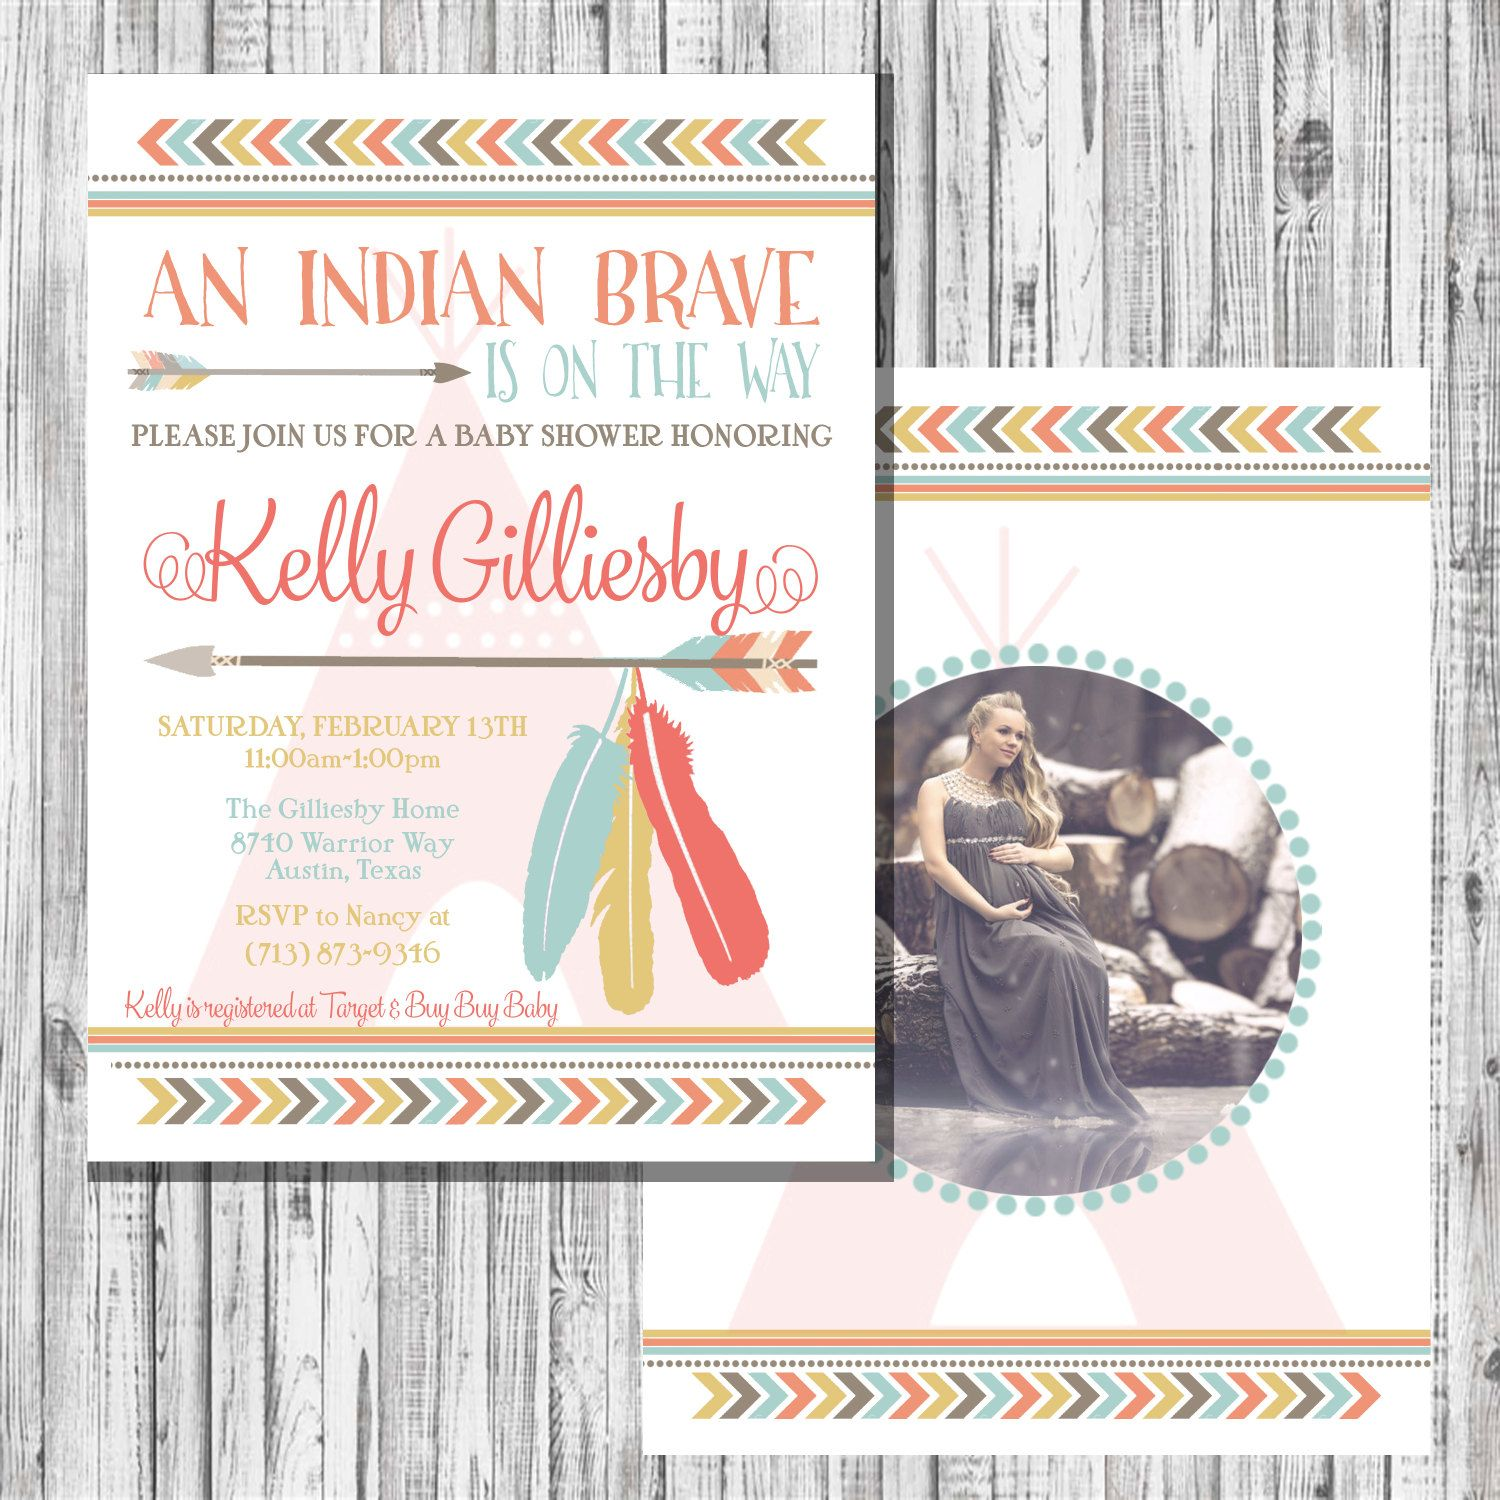 Indian Brave Baby Shower Invitation by LettersfromTexas on Etsy ...